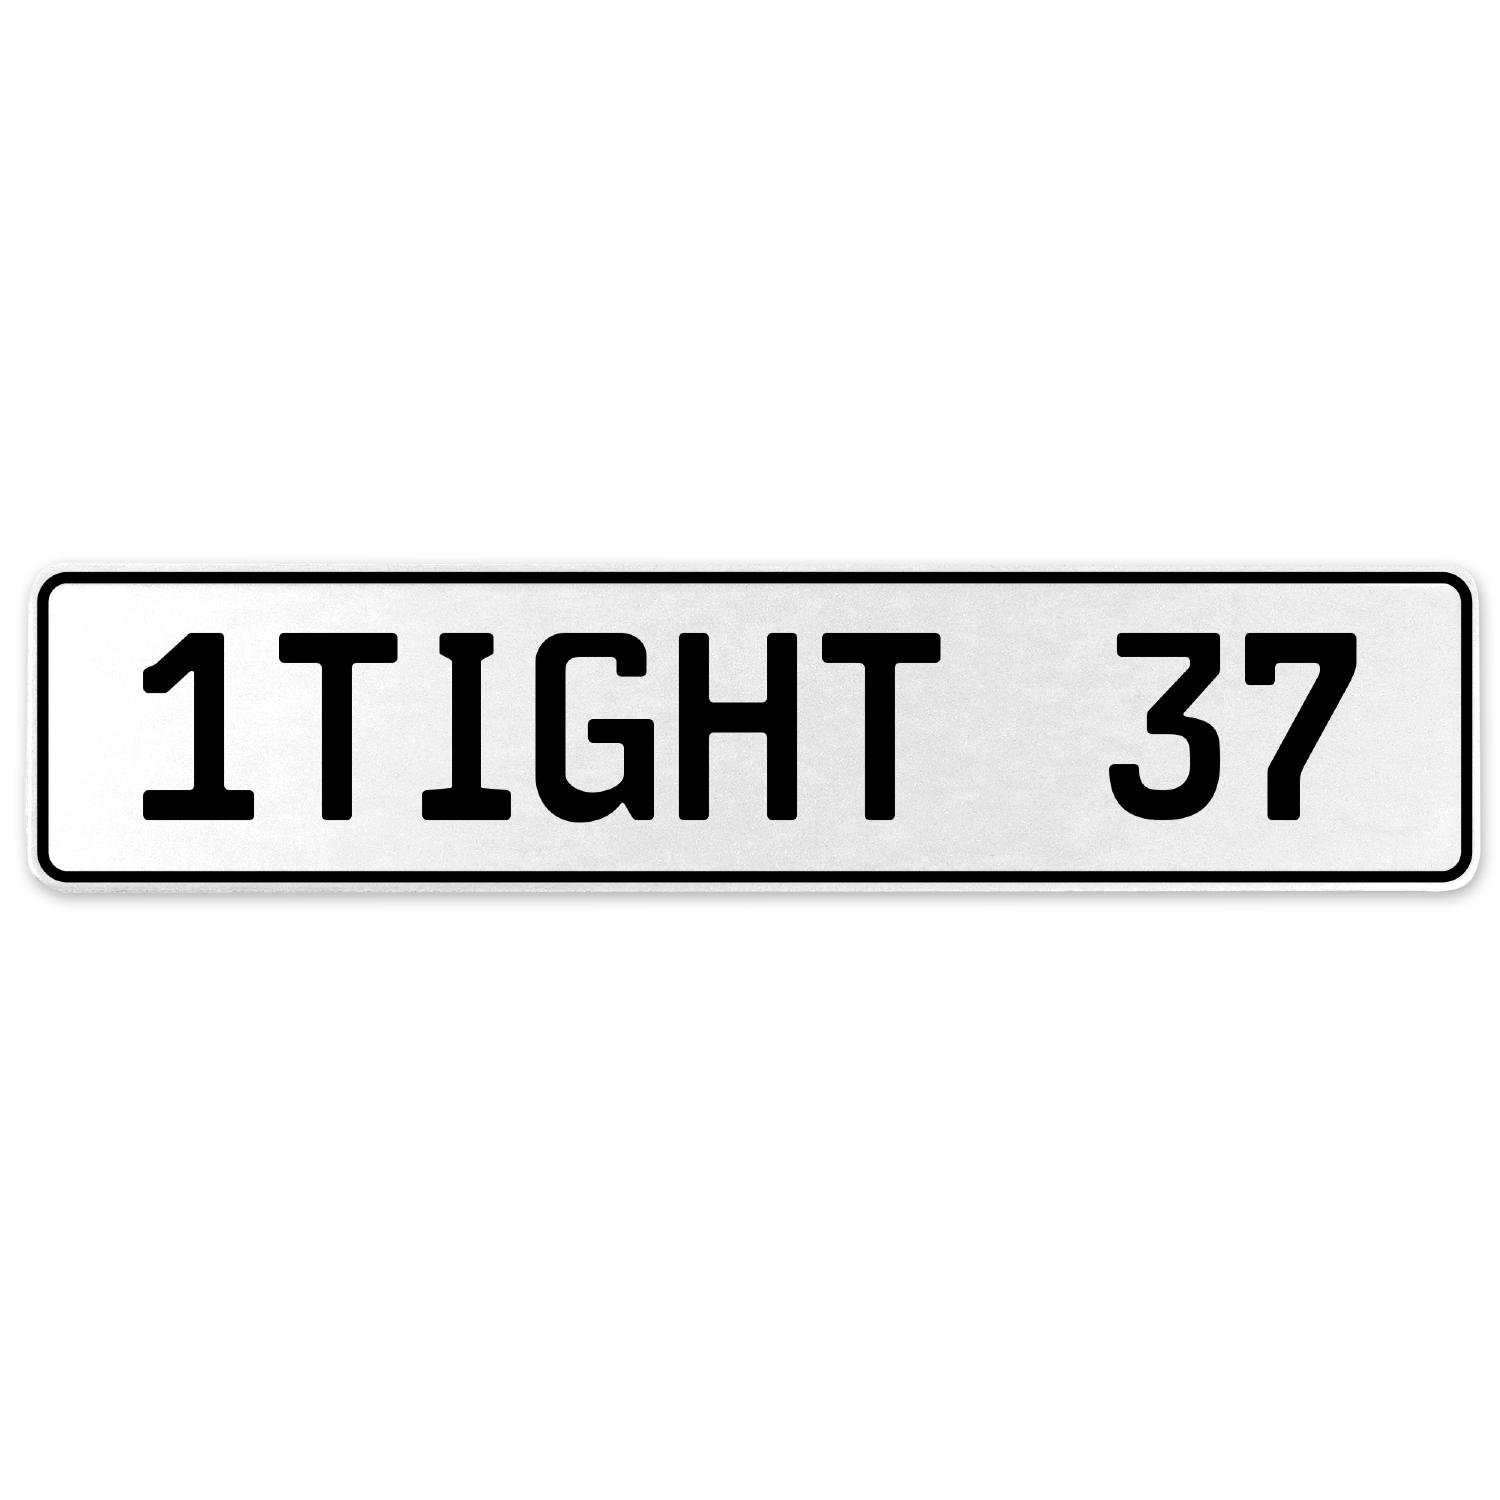 Vintage Parts 554832 1TIGHT 37 White Stamped Aluminum European License Plate